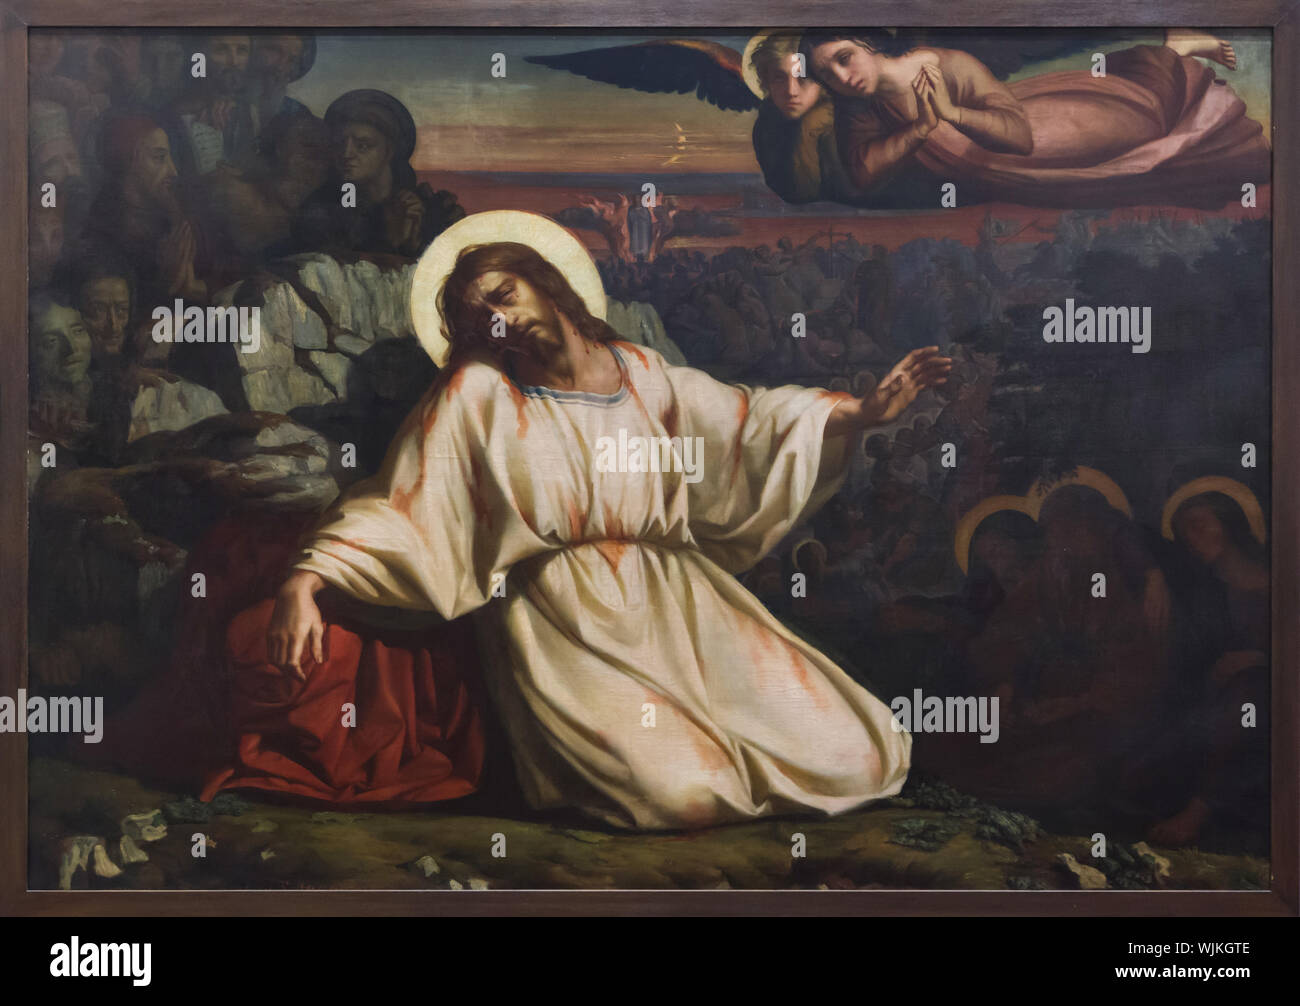 Painting 'Agony in the Garden' by French symbolist painter Louis Janmot on display in the Museum of Fine Arts (Musée des Beaux-Arts de Lyon) in Lyon, France. Stock Photo